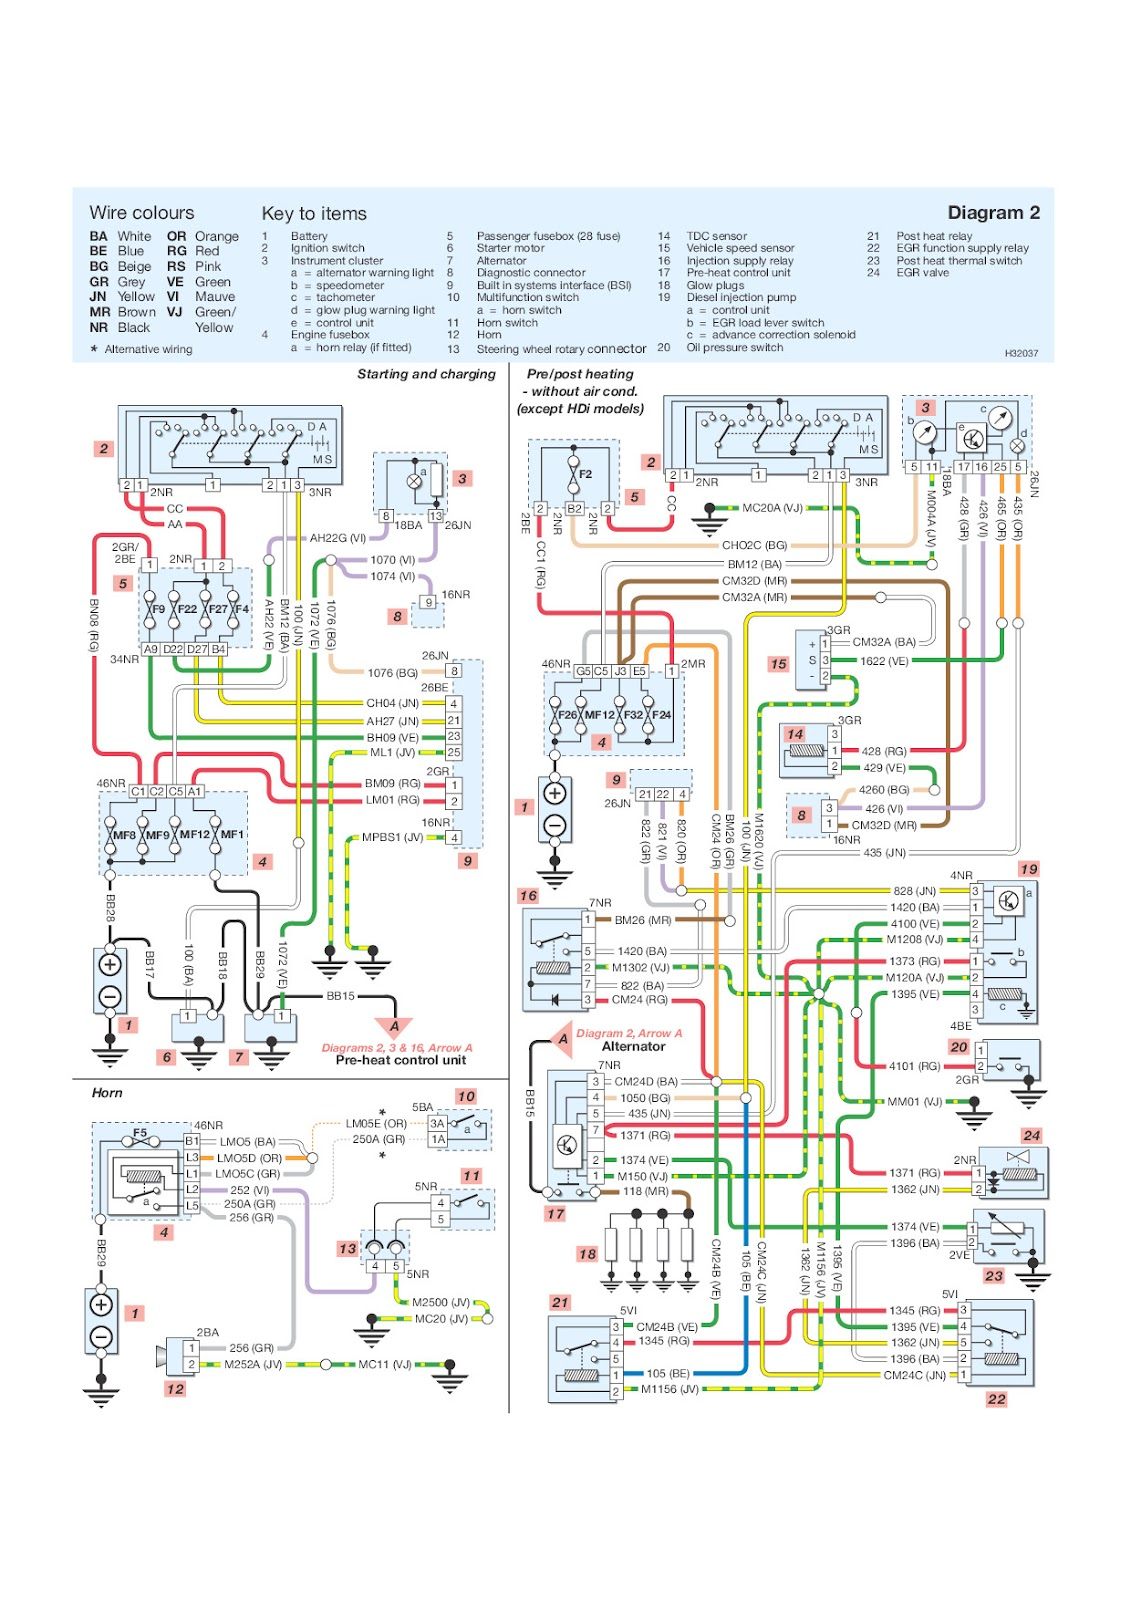 Heated Seat Wiring Diagram On For Peugeot 206 Stereo 2003 Acura Cl Schematic Your Diagrams Source Starting Charging Horn Rh Allwiringdiagrams Blogspot Com